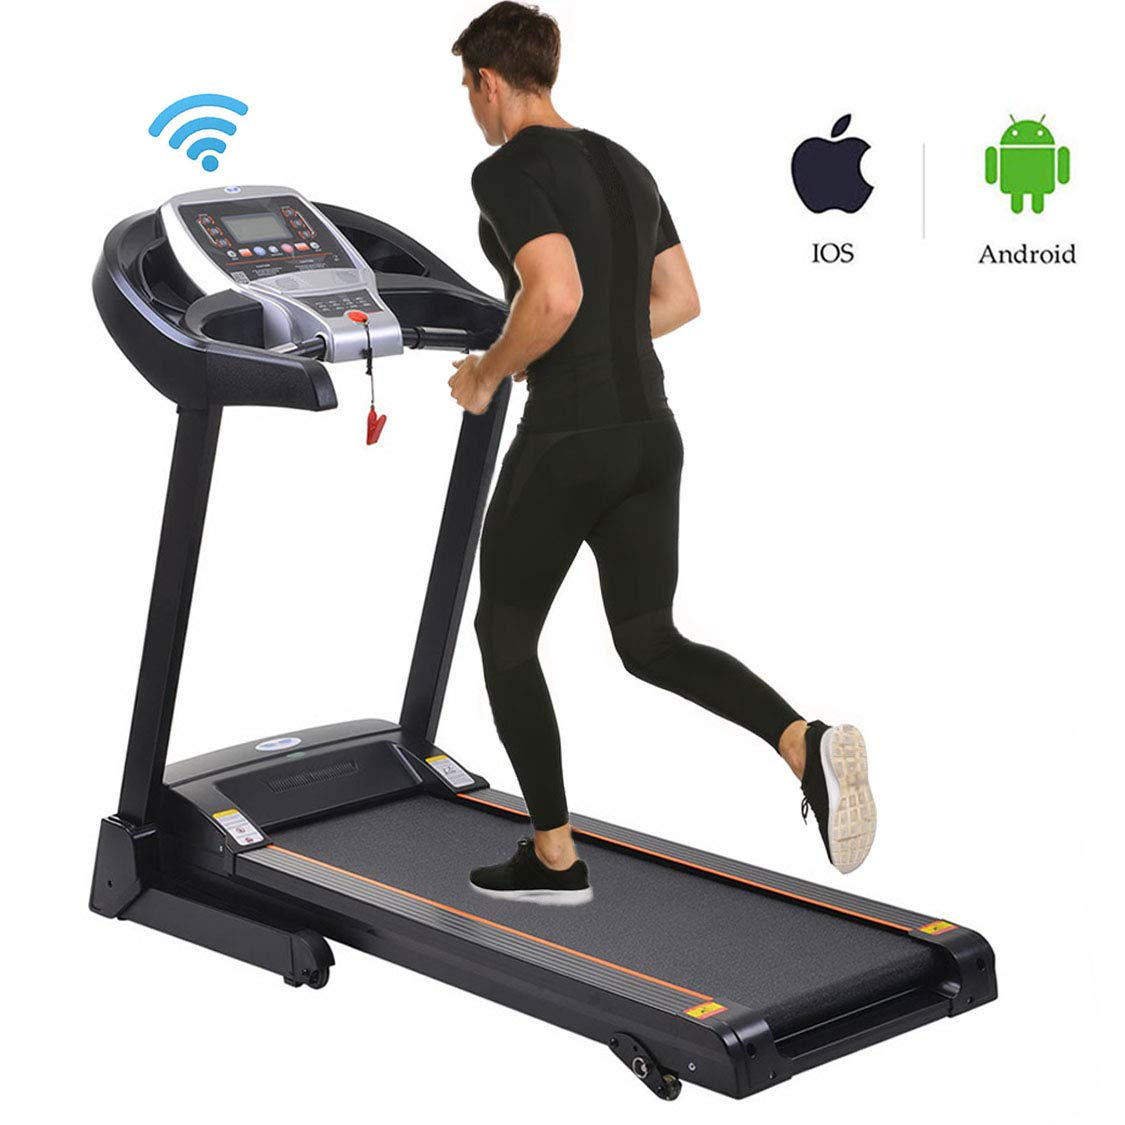 Miageek Fitness Folding Electric Jogging Treadmill with Smartphone APP Control, Walking Running Exercise Machine Incline Trainer Equipment Easy Assembly (2.25 HP - Black) by Miageek (Image #1)